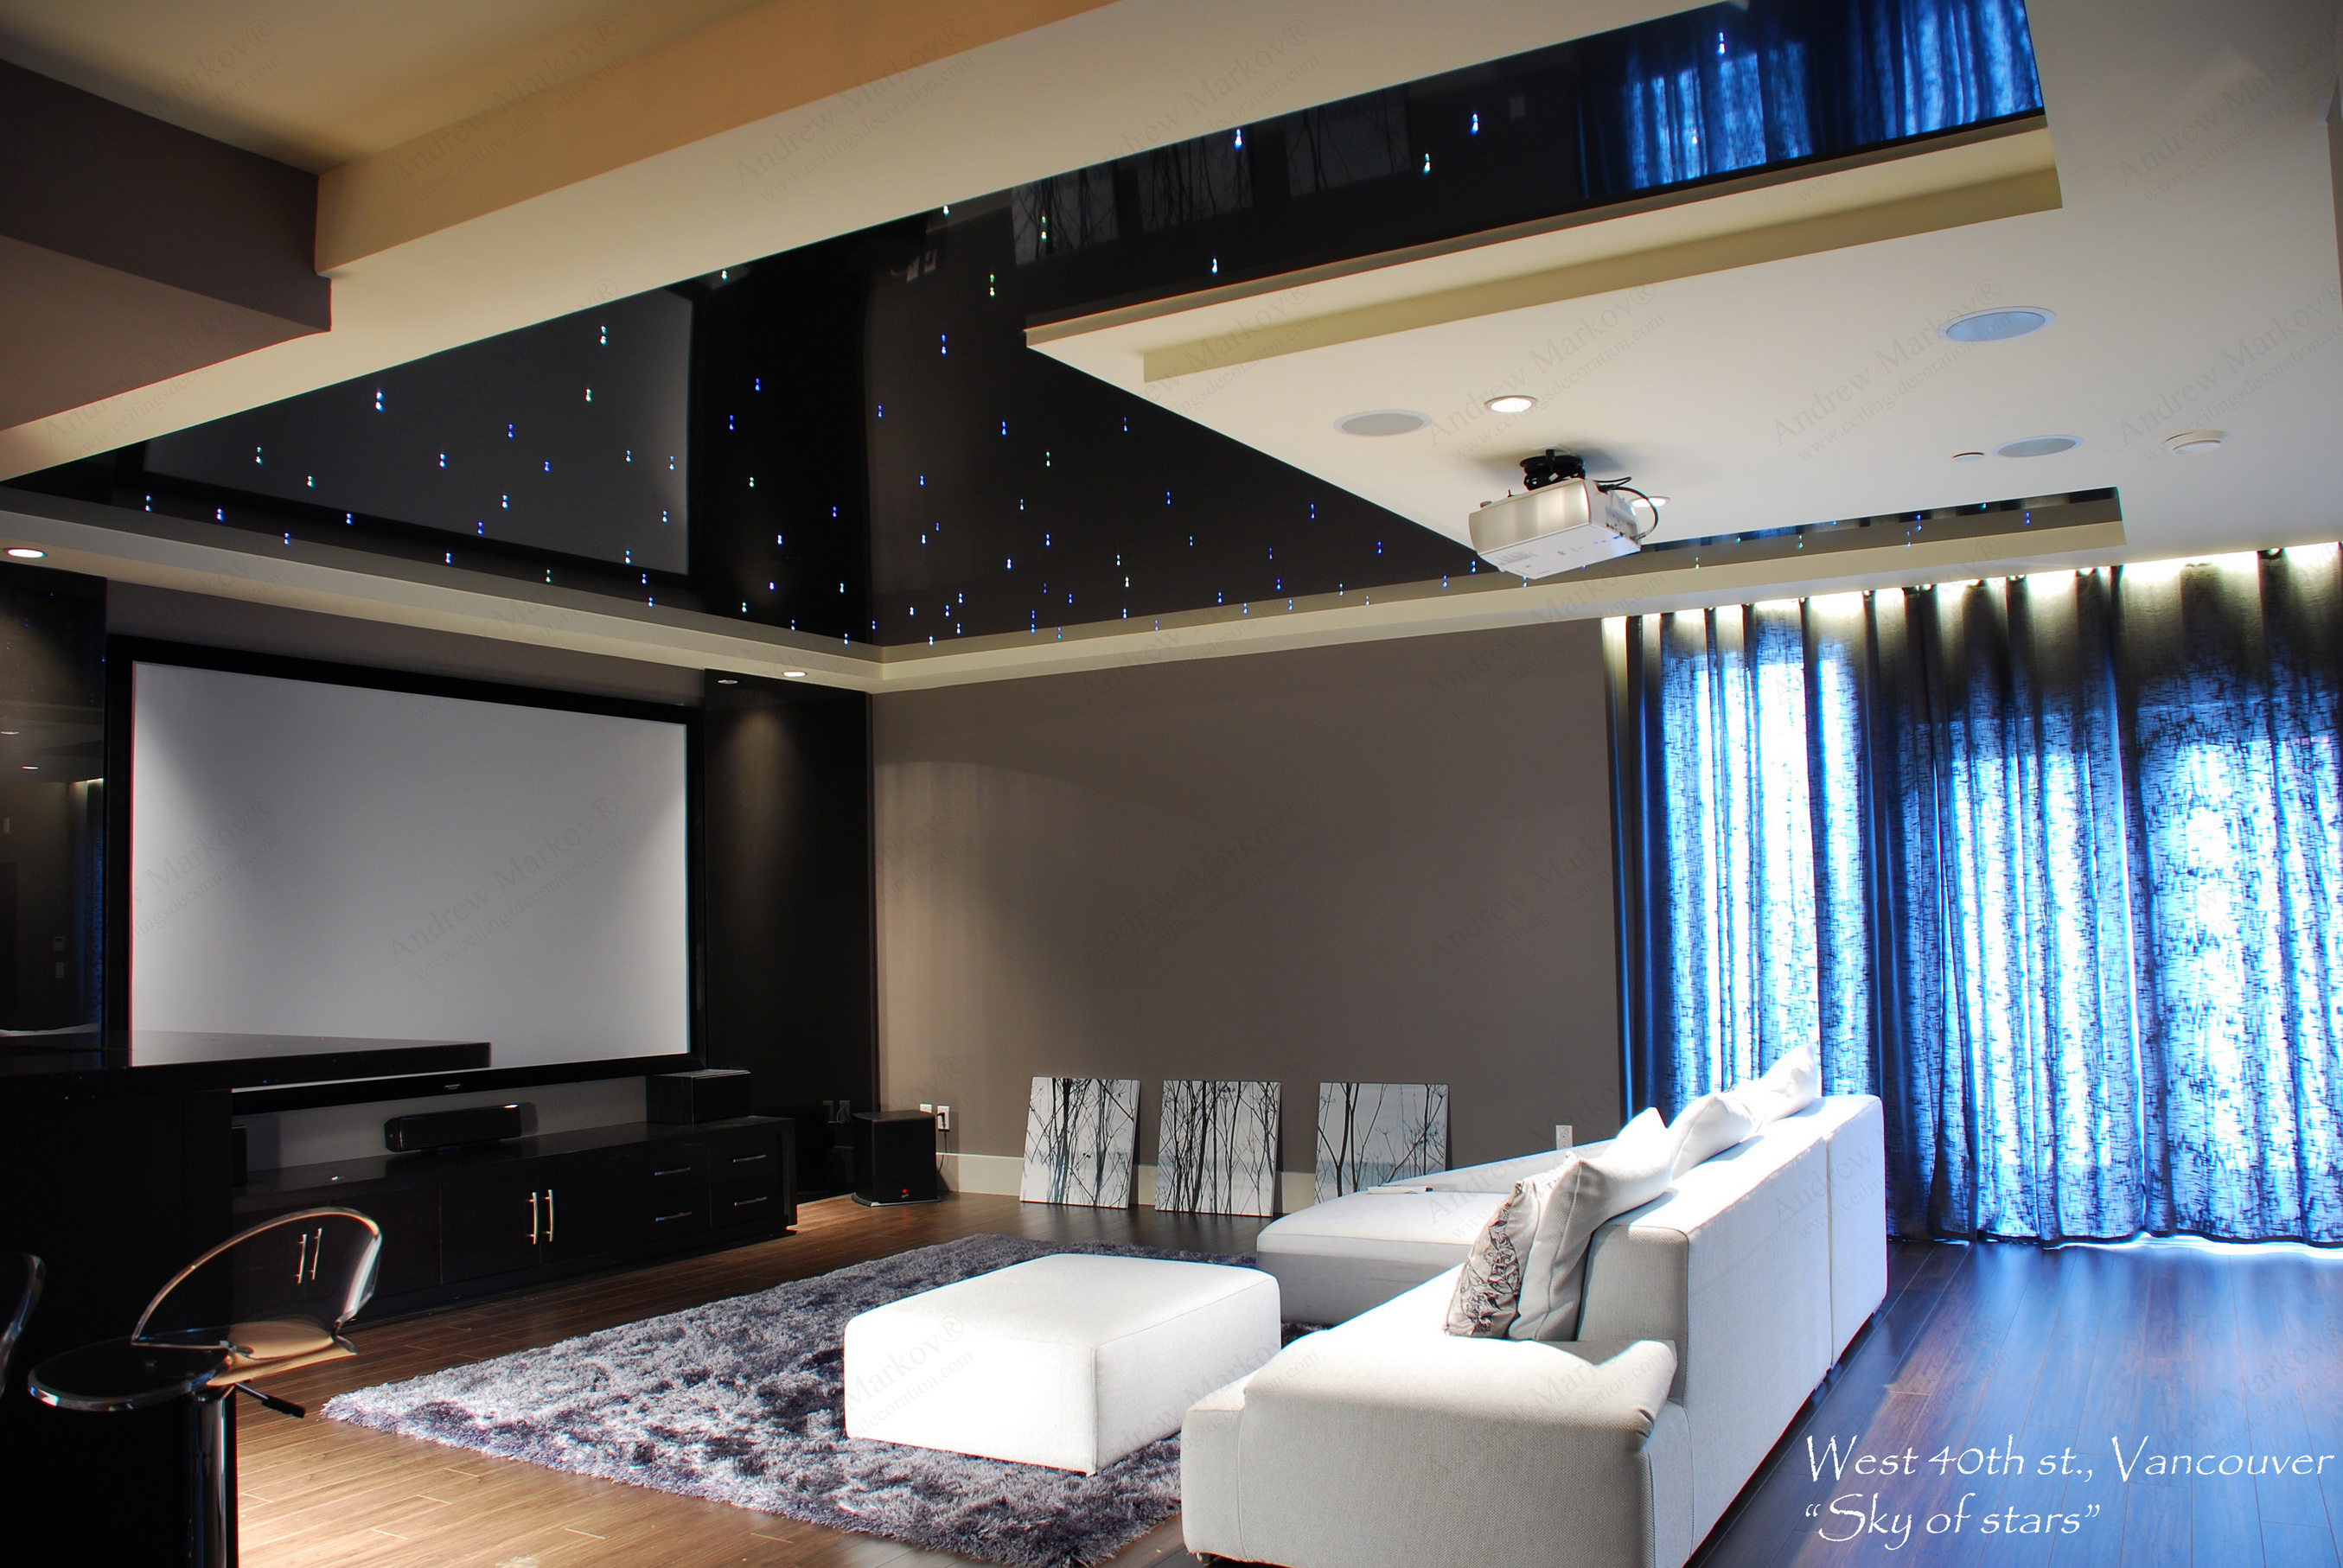 Ceilings Decoration In Design Glossy Stretch Ceilings